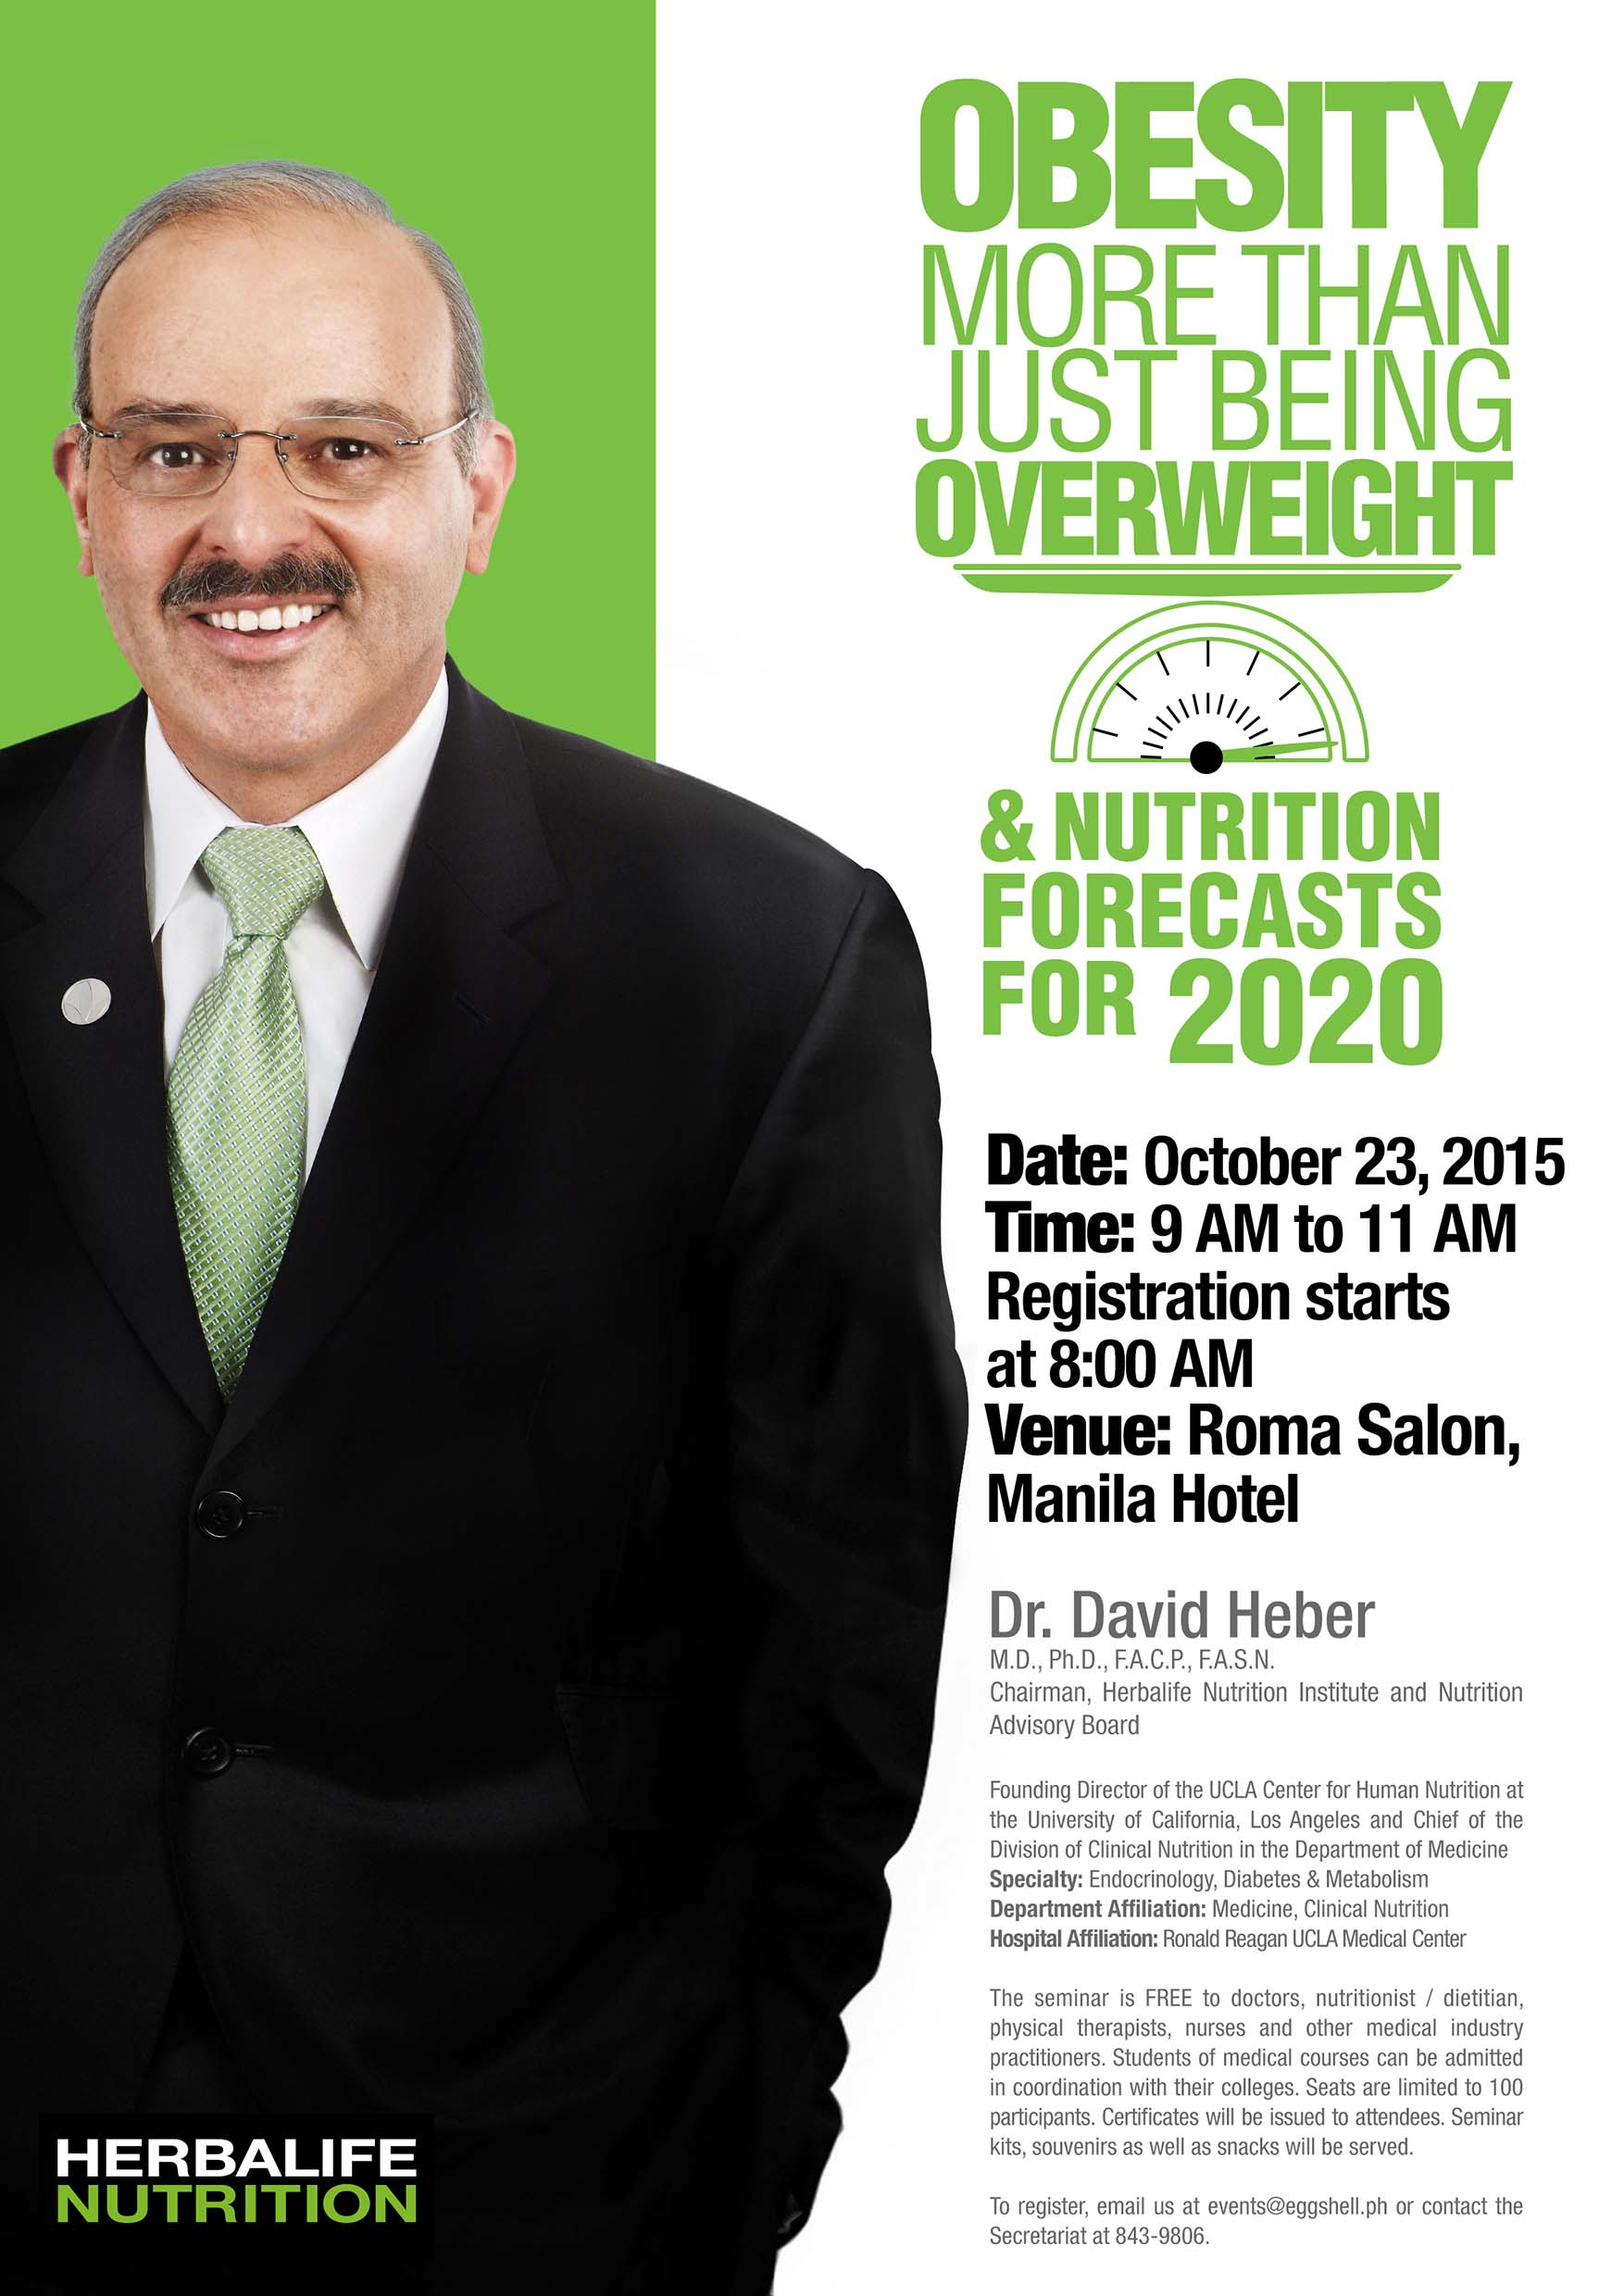 Top Endocrinologist Dr. David Heber to Hold Free Seminar for Medical Practitioners